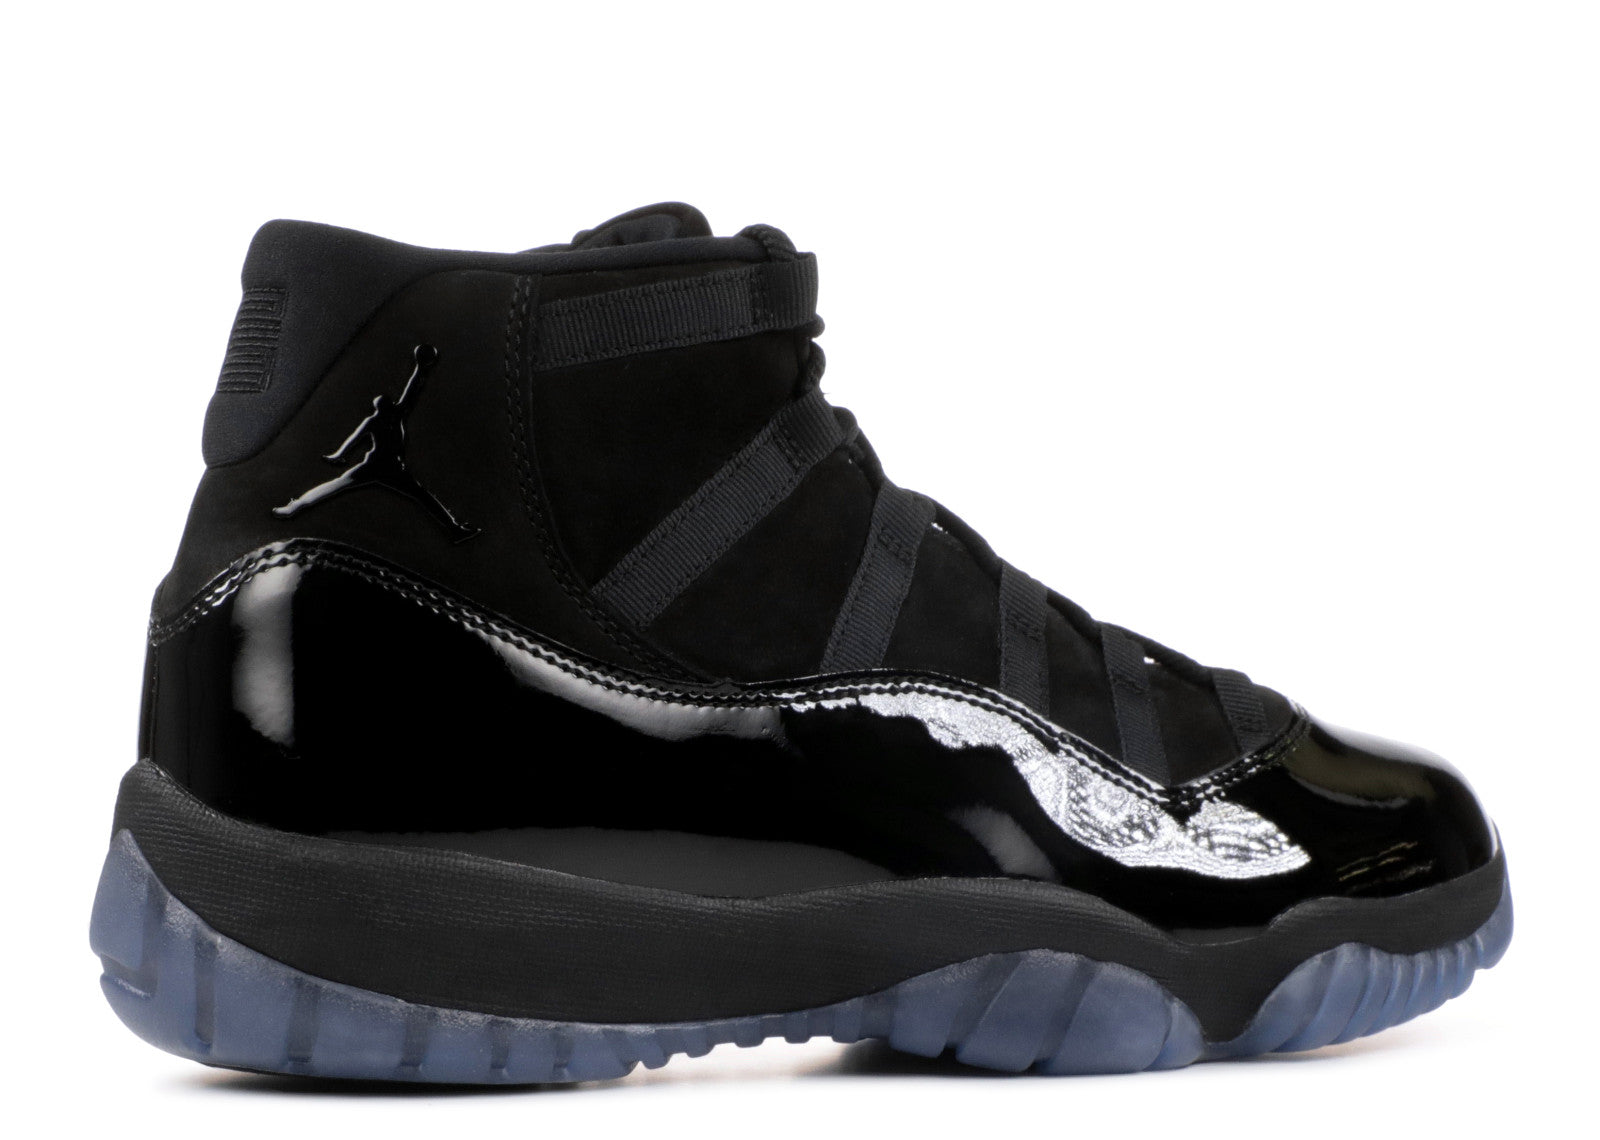 Nike Air Jordan 11 Retro 'Cap and Gown'